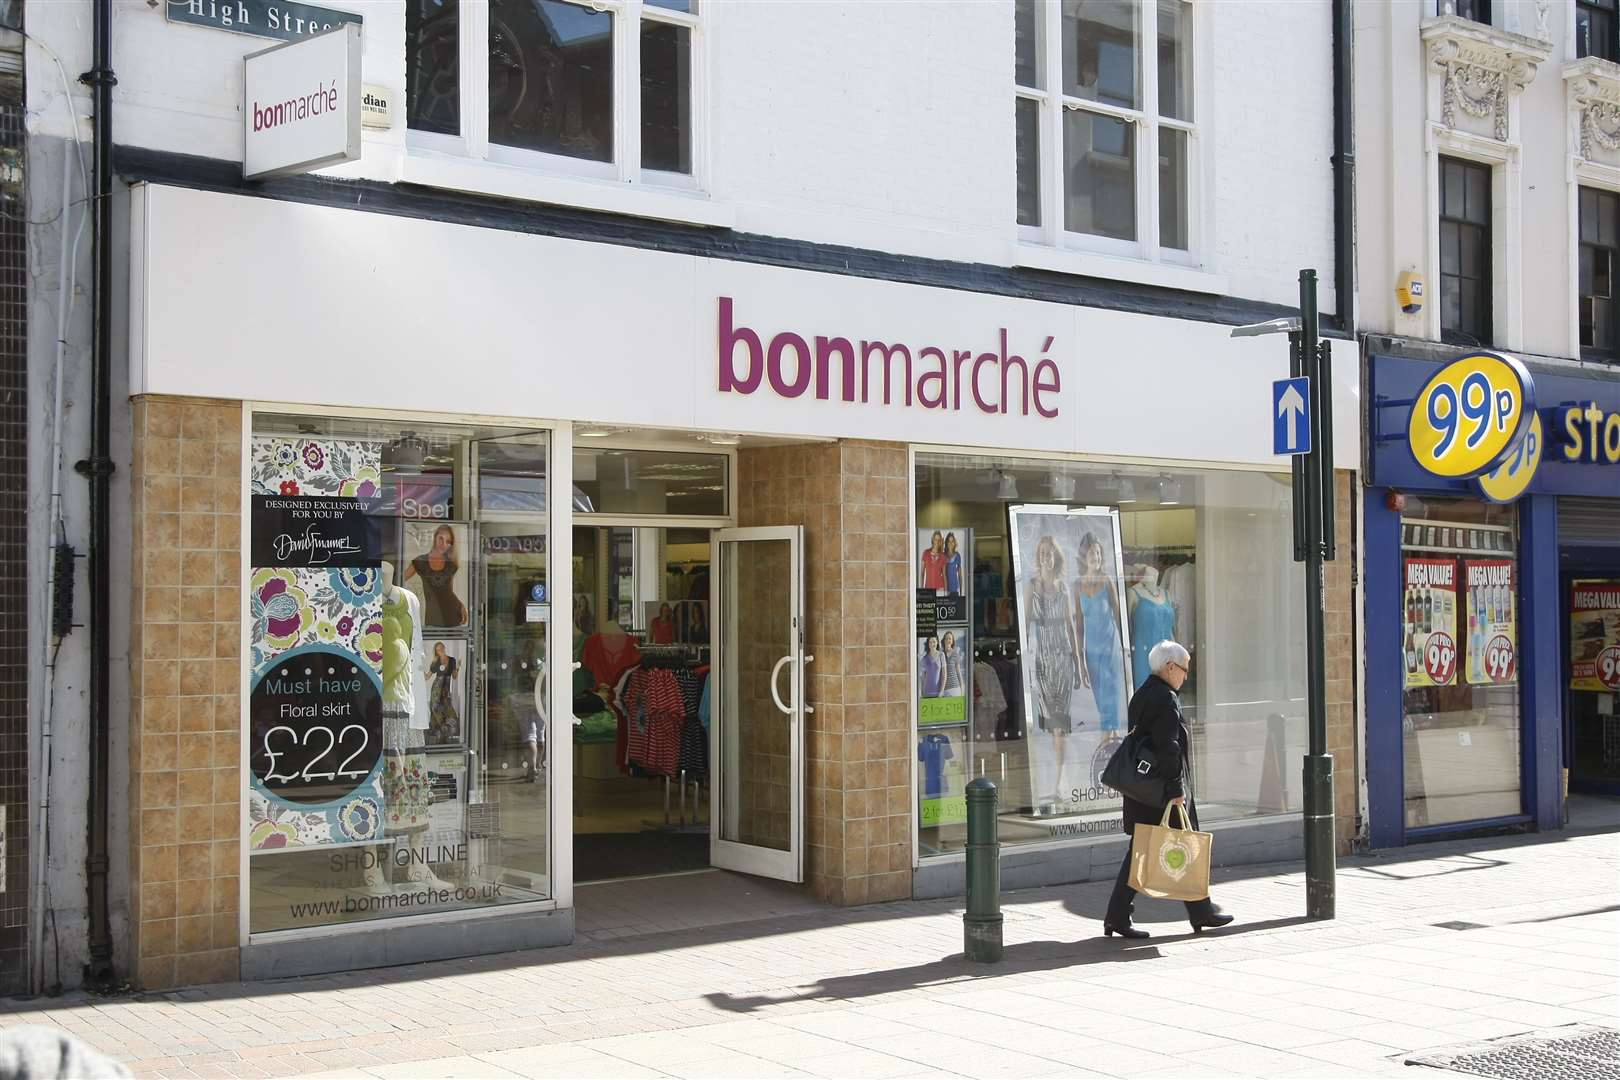 The Bonmarche store in Chatham High Street